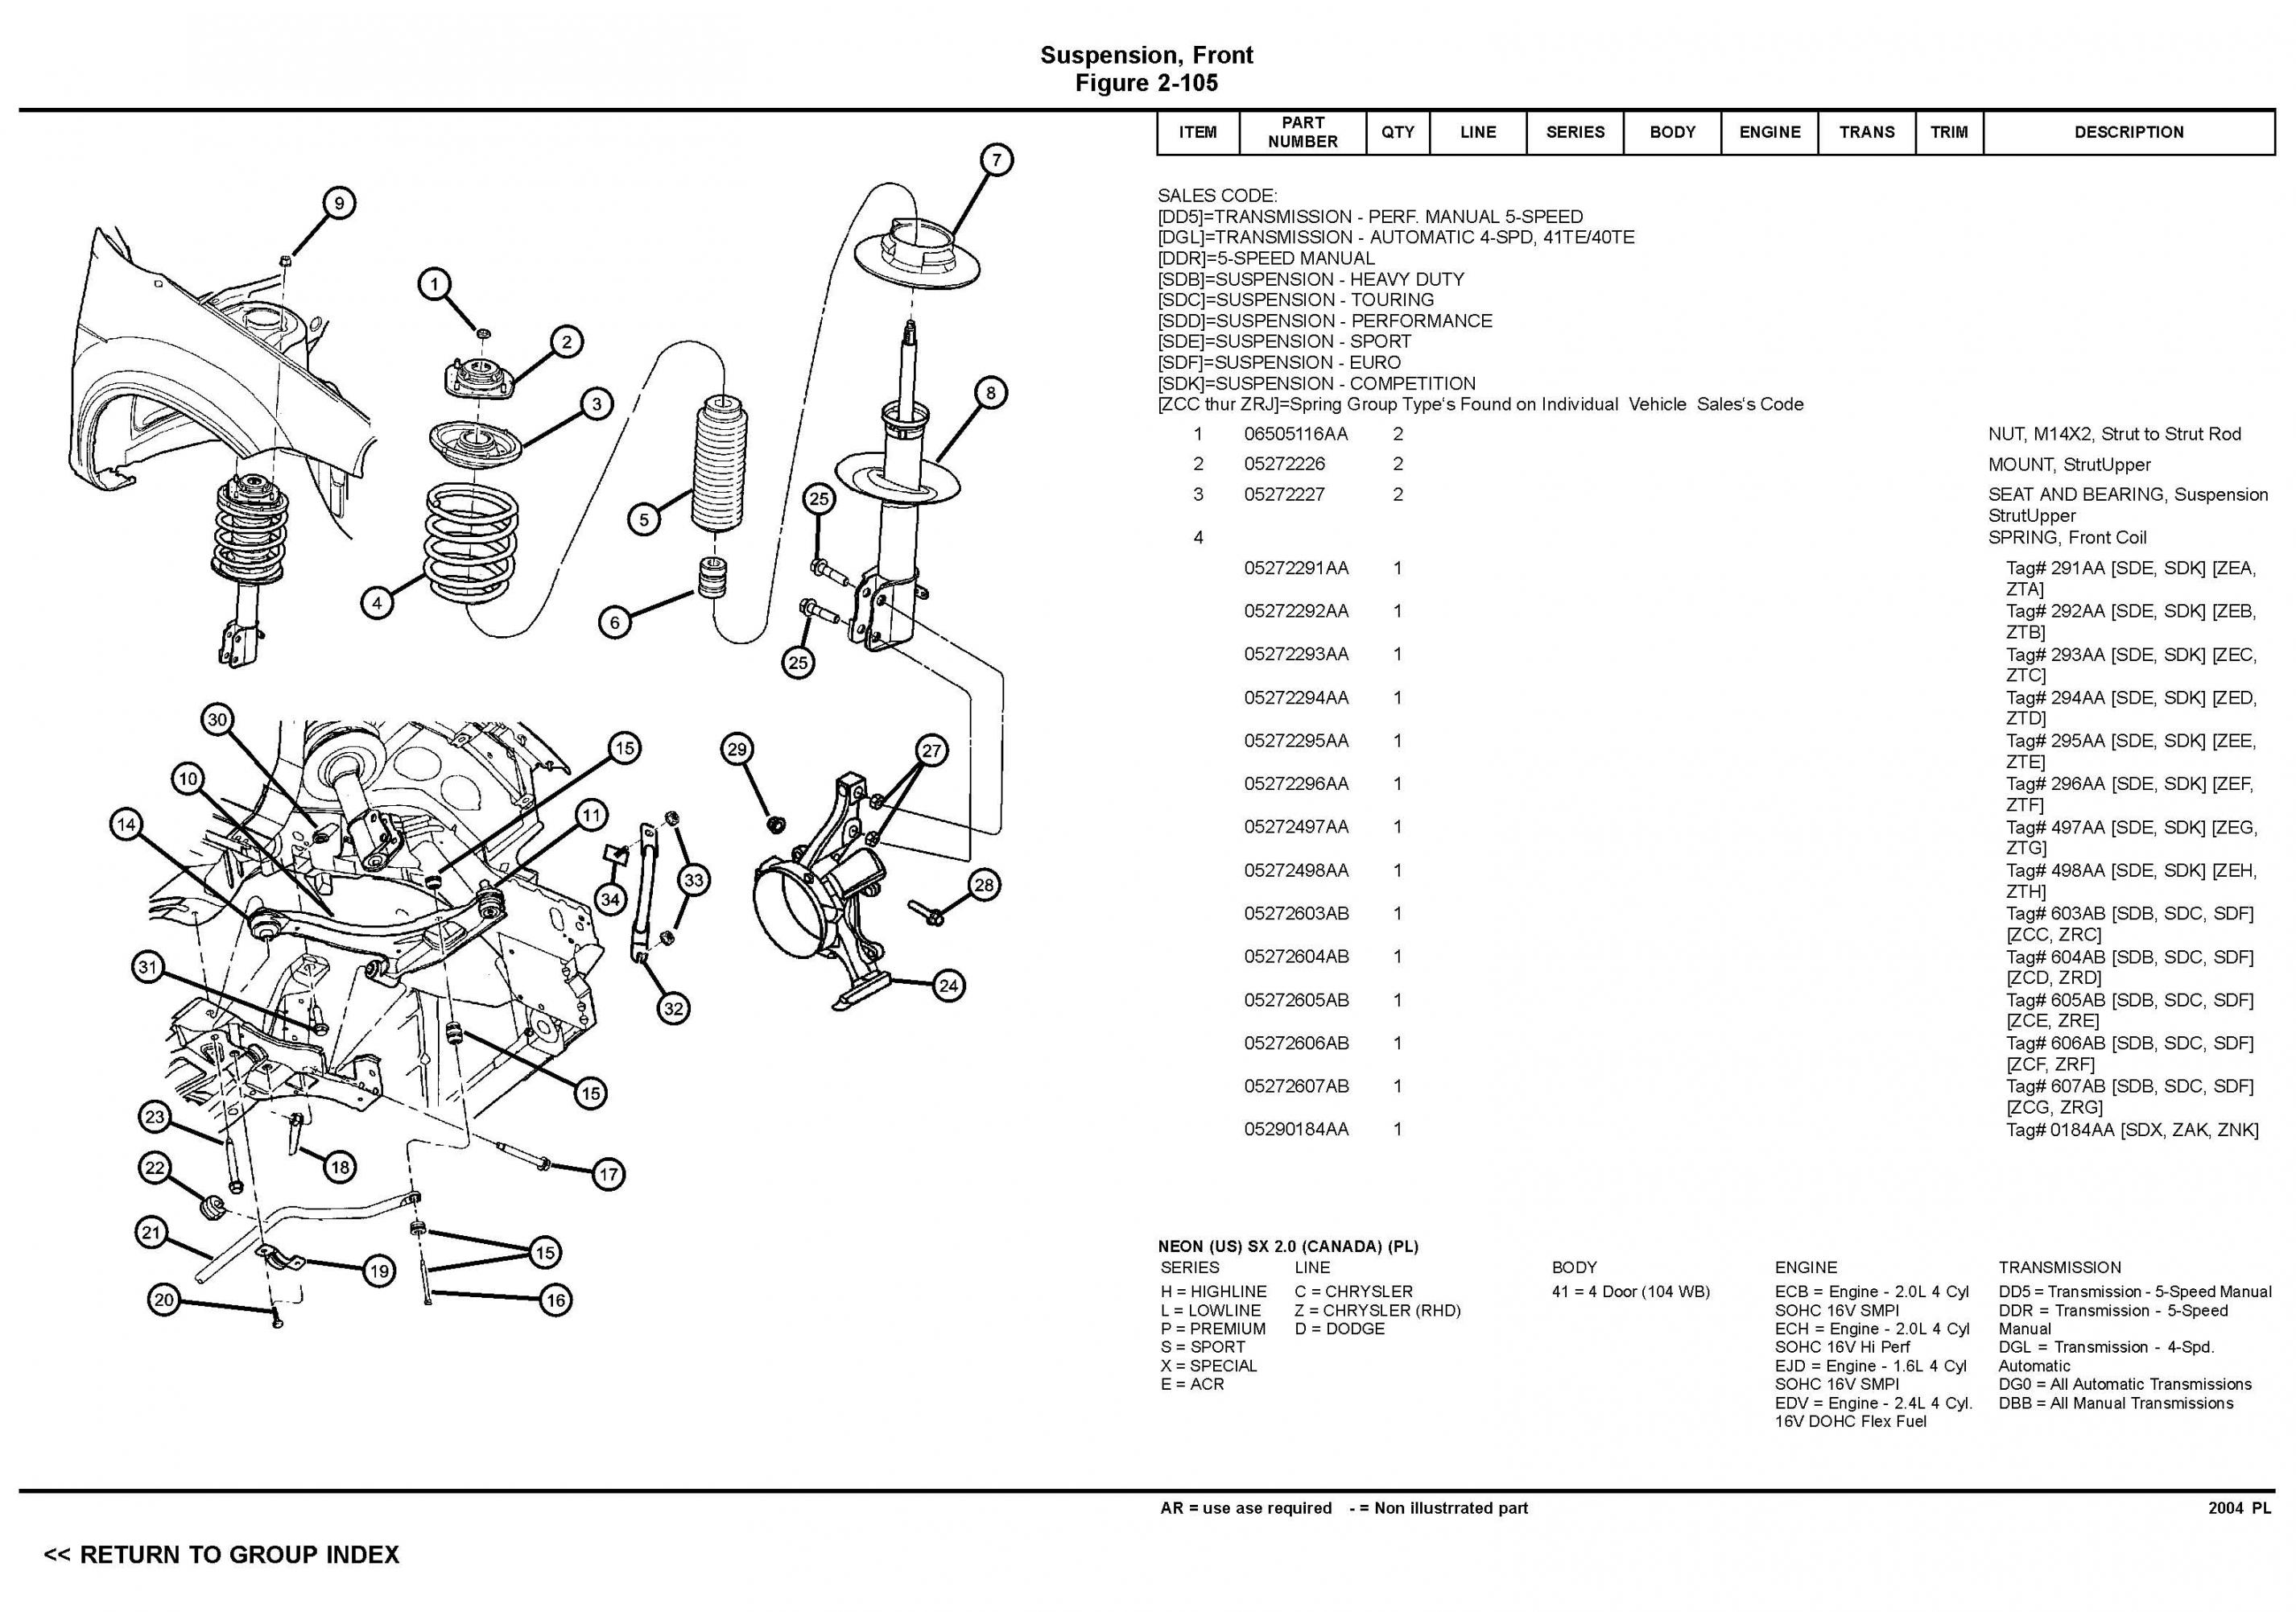 2005 Dodge Neon Pcm Wire Diagram Wiring Library 2004 Caravan Radio 2002 Ram 1500 Data With Harness Click Image For Larger Version Name Discountmoparpartsnet 04pl Page 024 Views 23218